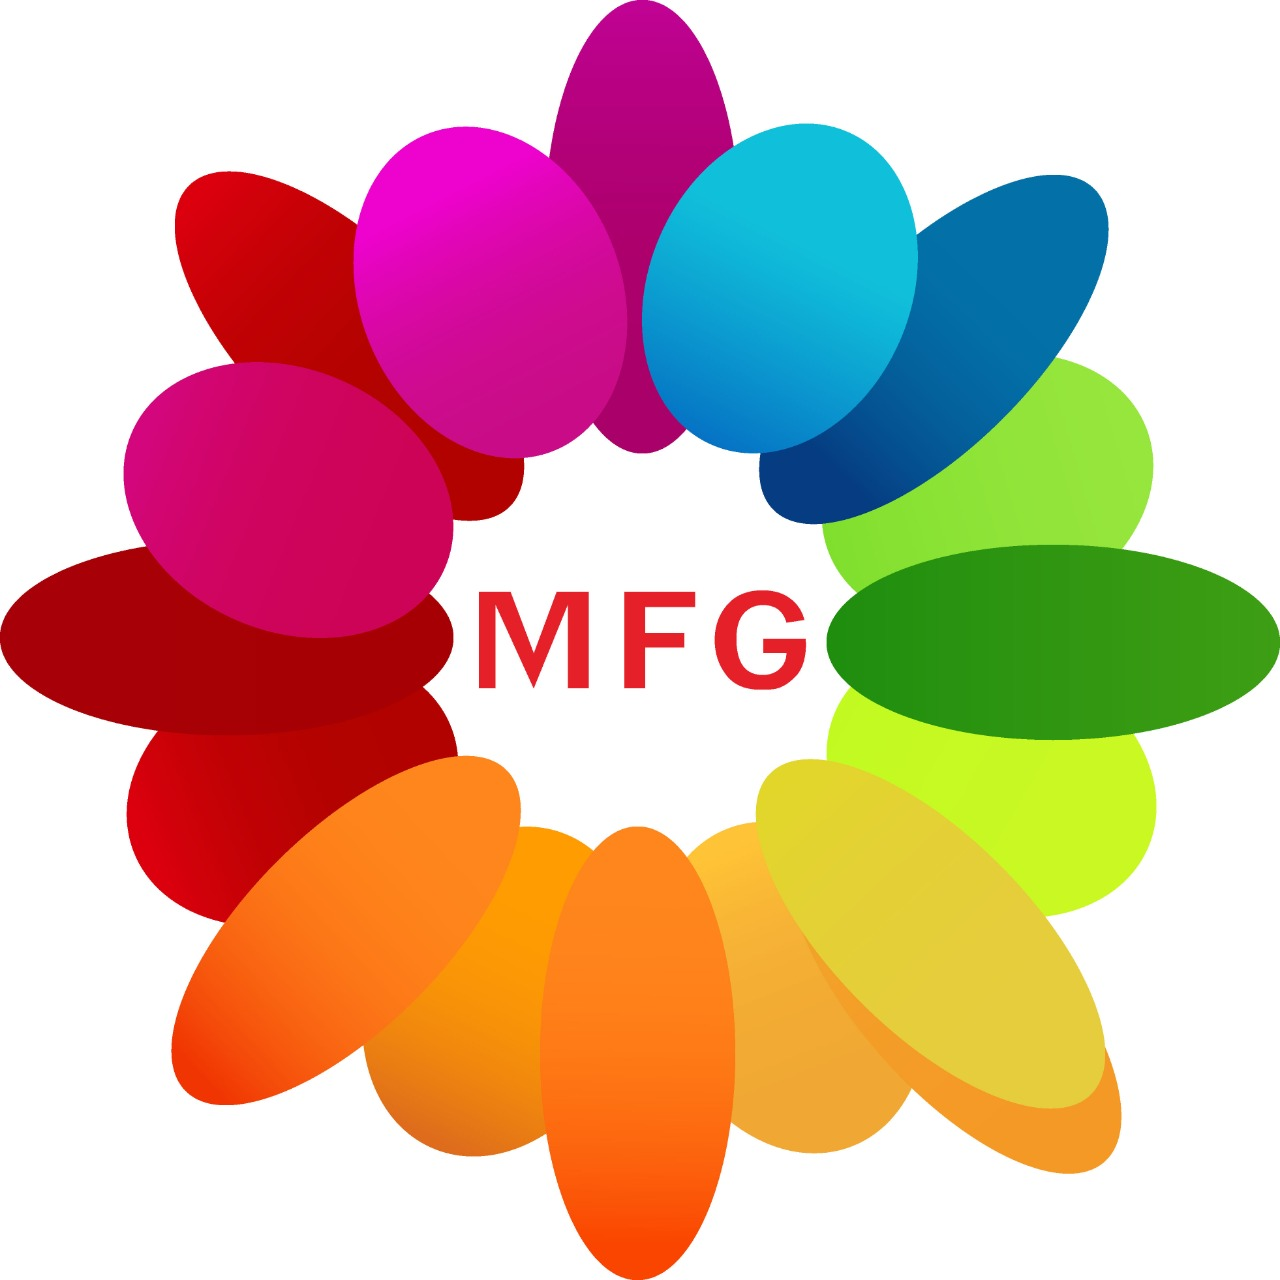 Box Of Chocolates With Santa Clause Toys, Santa Cap, And Candles Arranged In A Basket